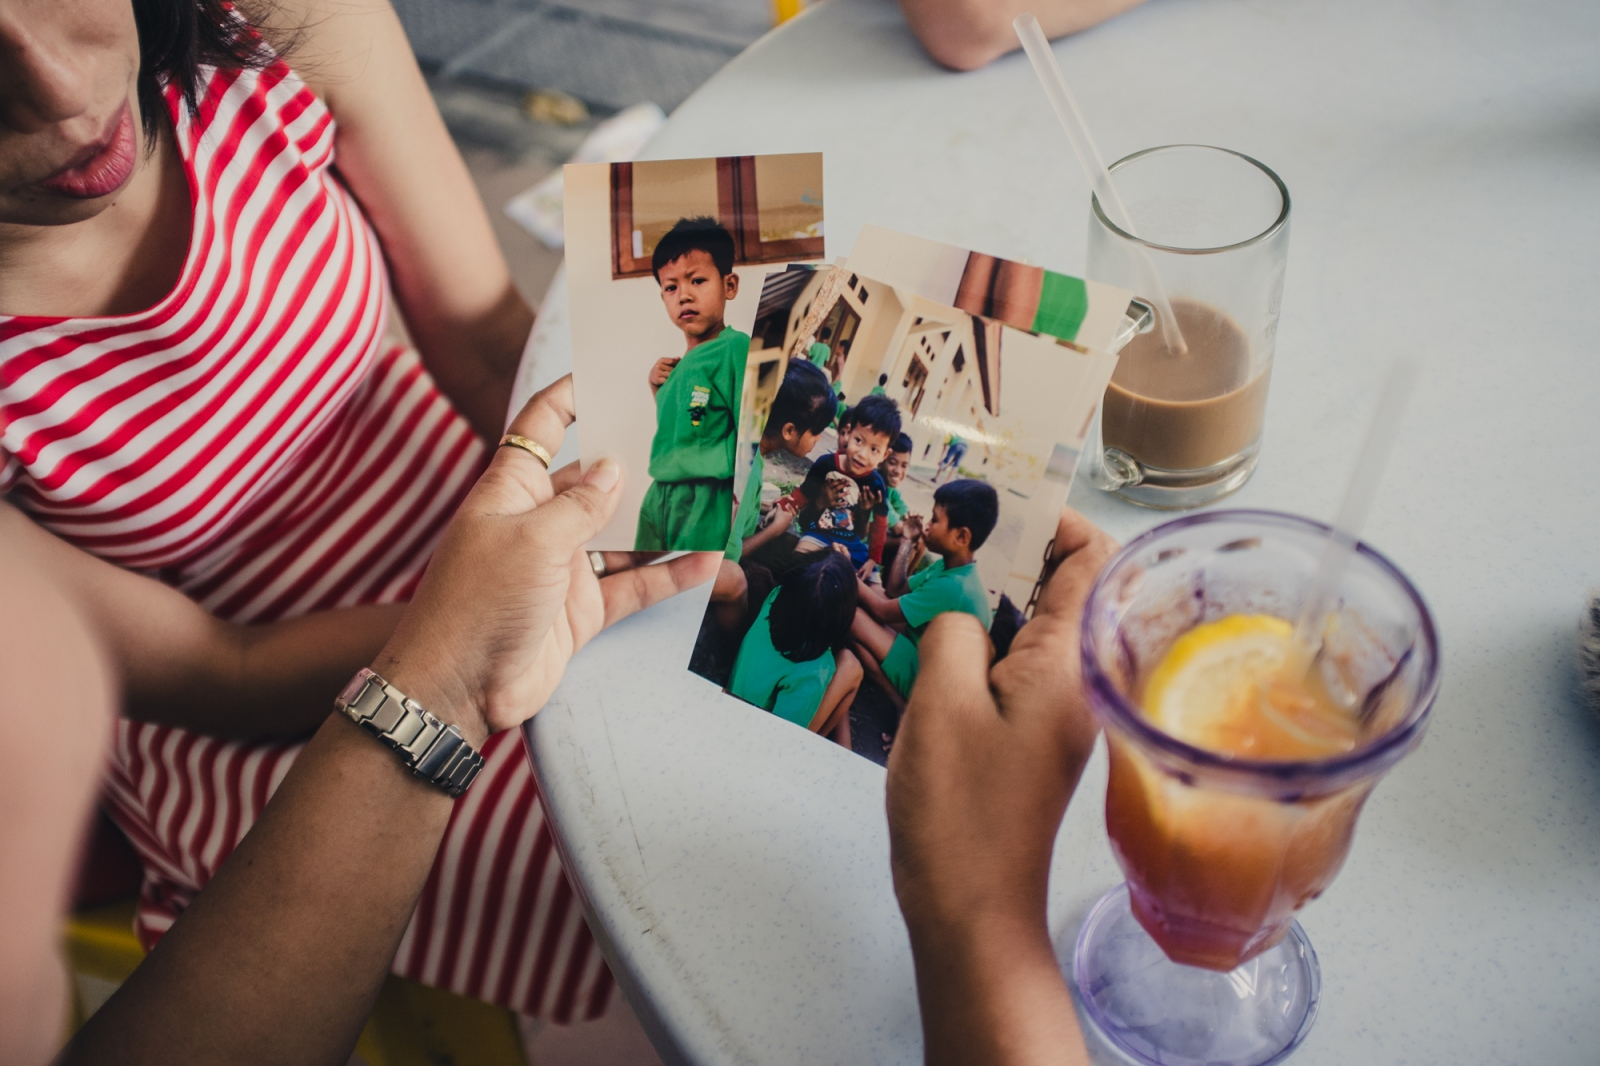 An Indonesian Foreign Domestic Worker with photographs of her 3 year old son in Indonesia. The father is absent and he is being looked after in a care home.  Scared of her family's reaction to her having a child out of wedlock she had left her son with another family when he was 18 months old so she could take up a job in Singapore. After the couple began to demand more money from her and refused to let her talk to her son she was granted time off from her employer to take her son to a care home run by the organisation Peduli Anak. The boy has minimal language skills and displays symptoms consistant with autism. Peduli Anak does not have the facilities to deal with autistic children and is hoping to help her find proper care for her son.